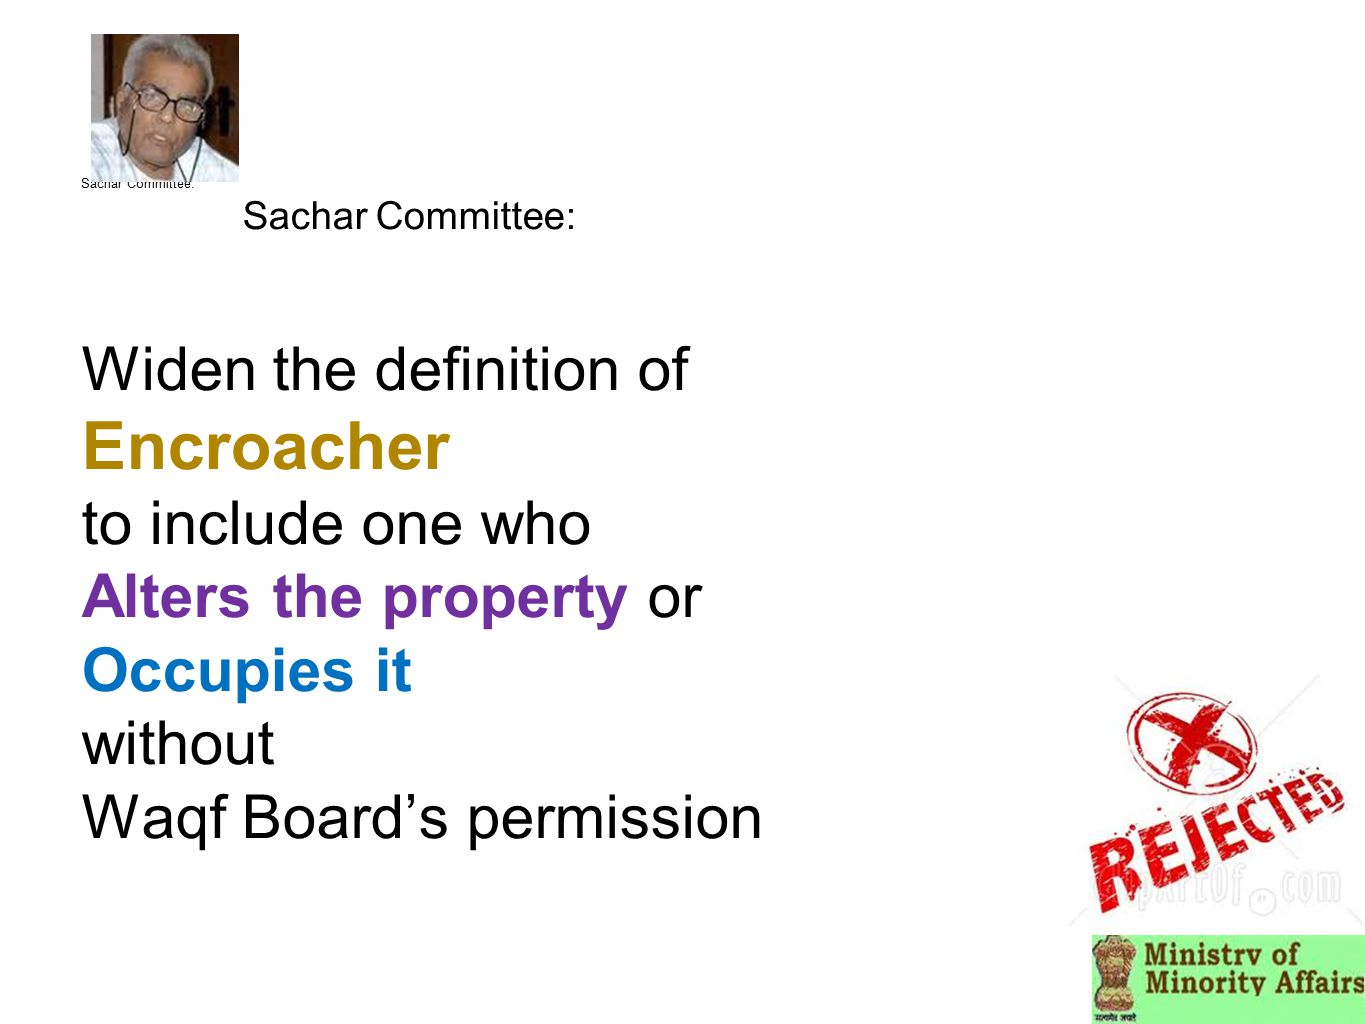 Sachar Committee: Sachar Committee: Widen the definition of Encroacher to include one who Alters the property or Occupies it without Waqf Board's perm